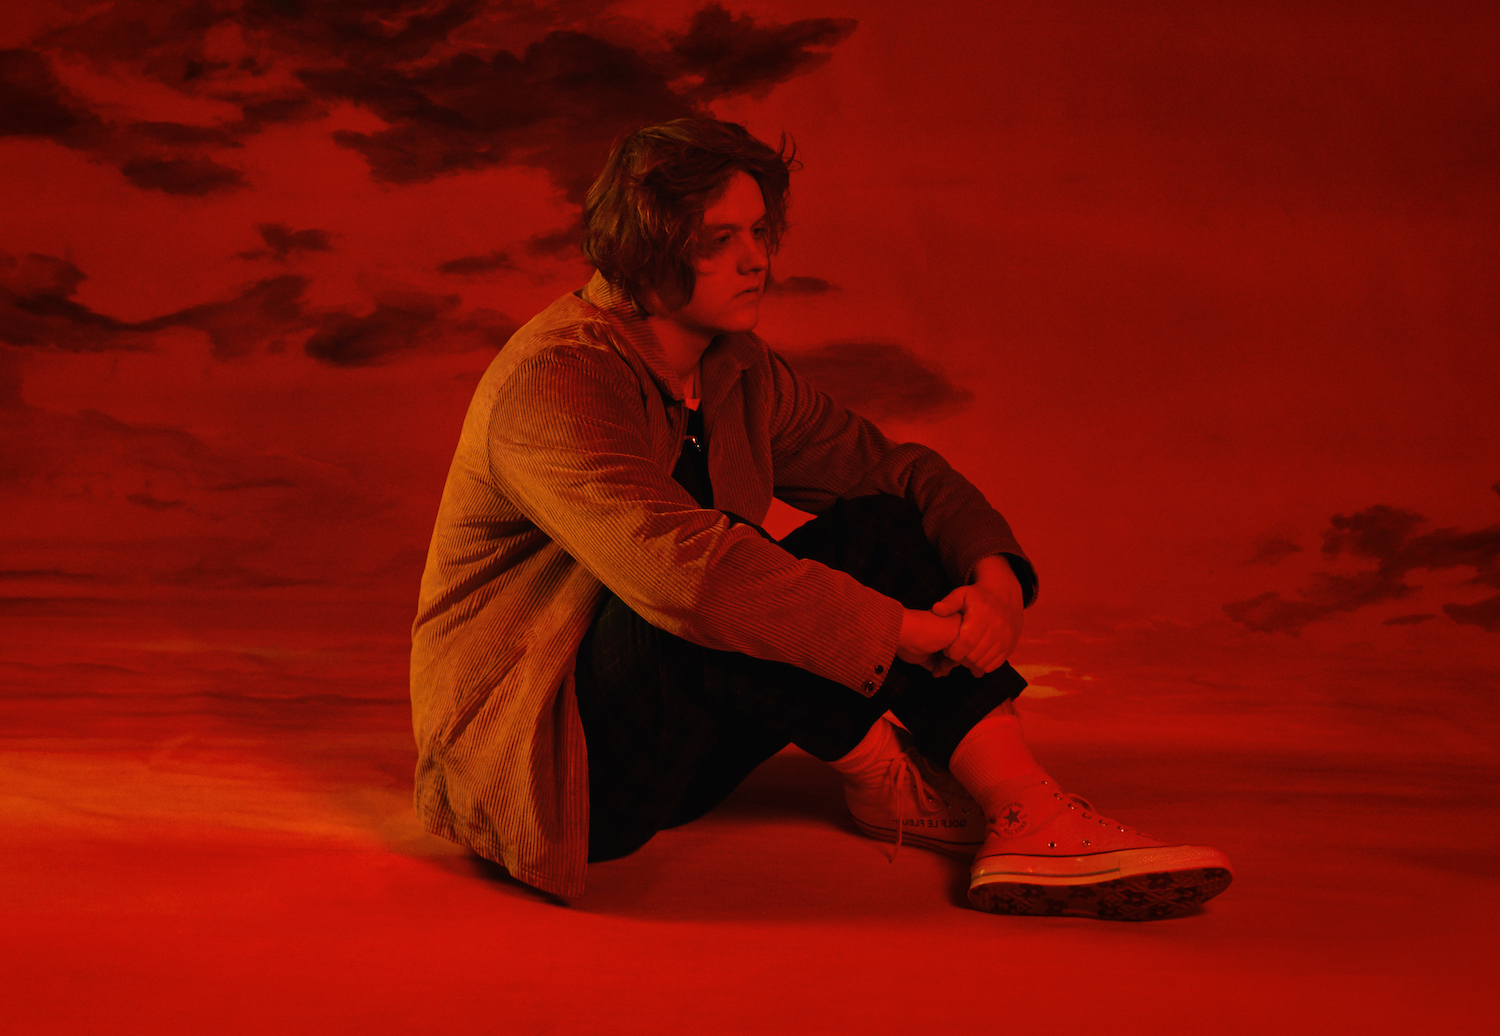 Divinely Uninspired to a Hellish Extent - Lewis Capaldi